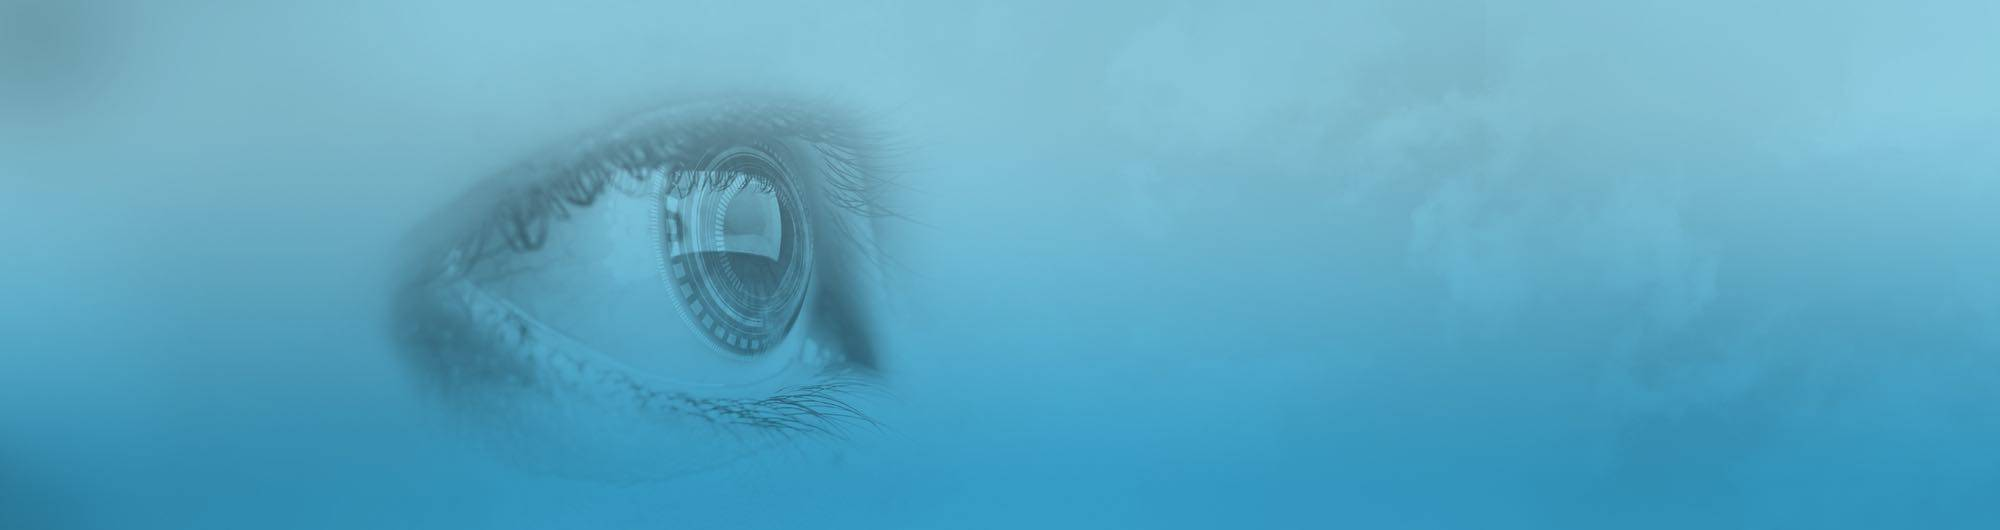 background-eye_techy_clouds_lightblue